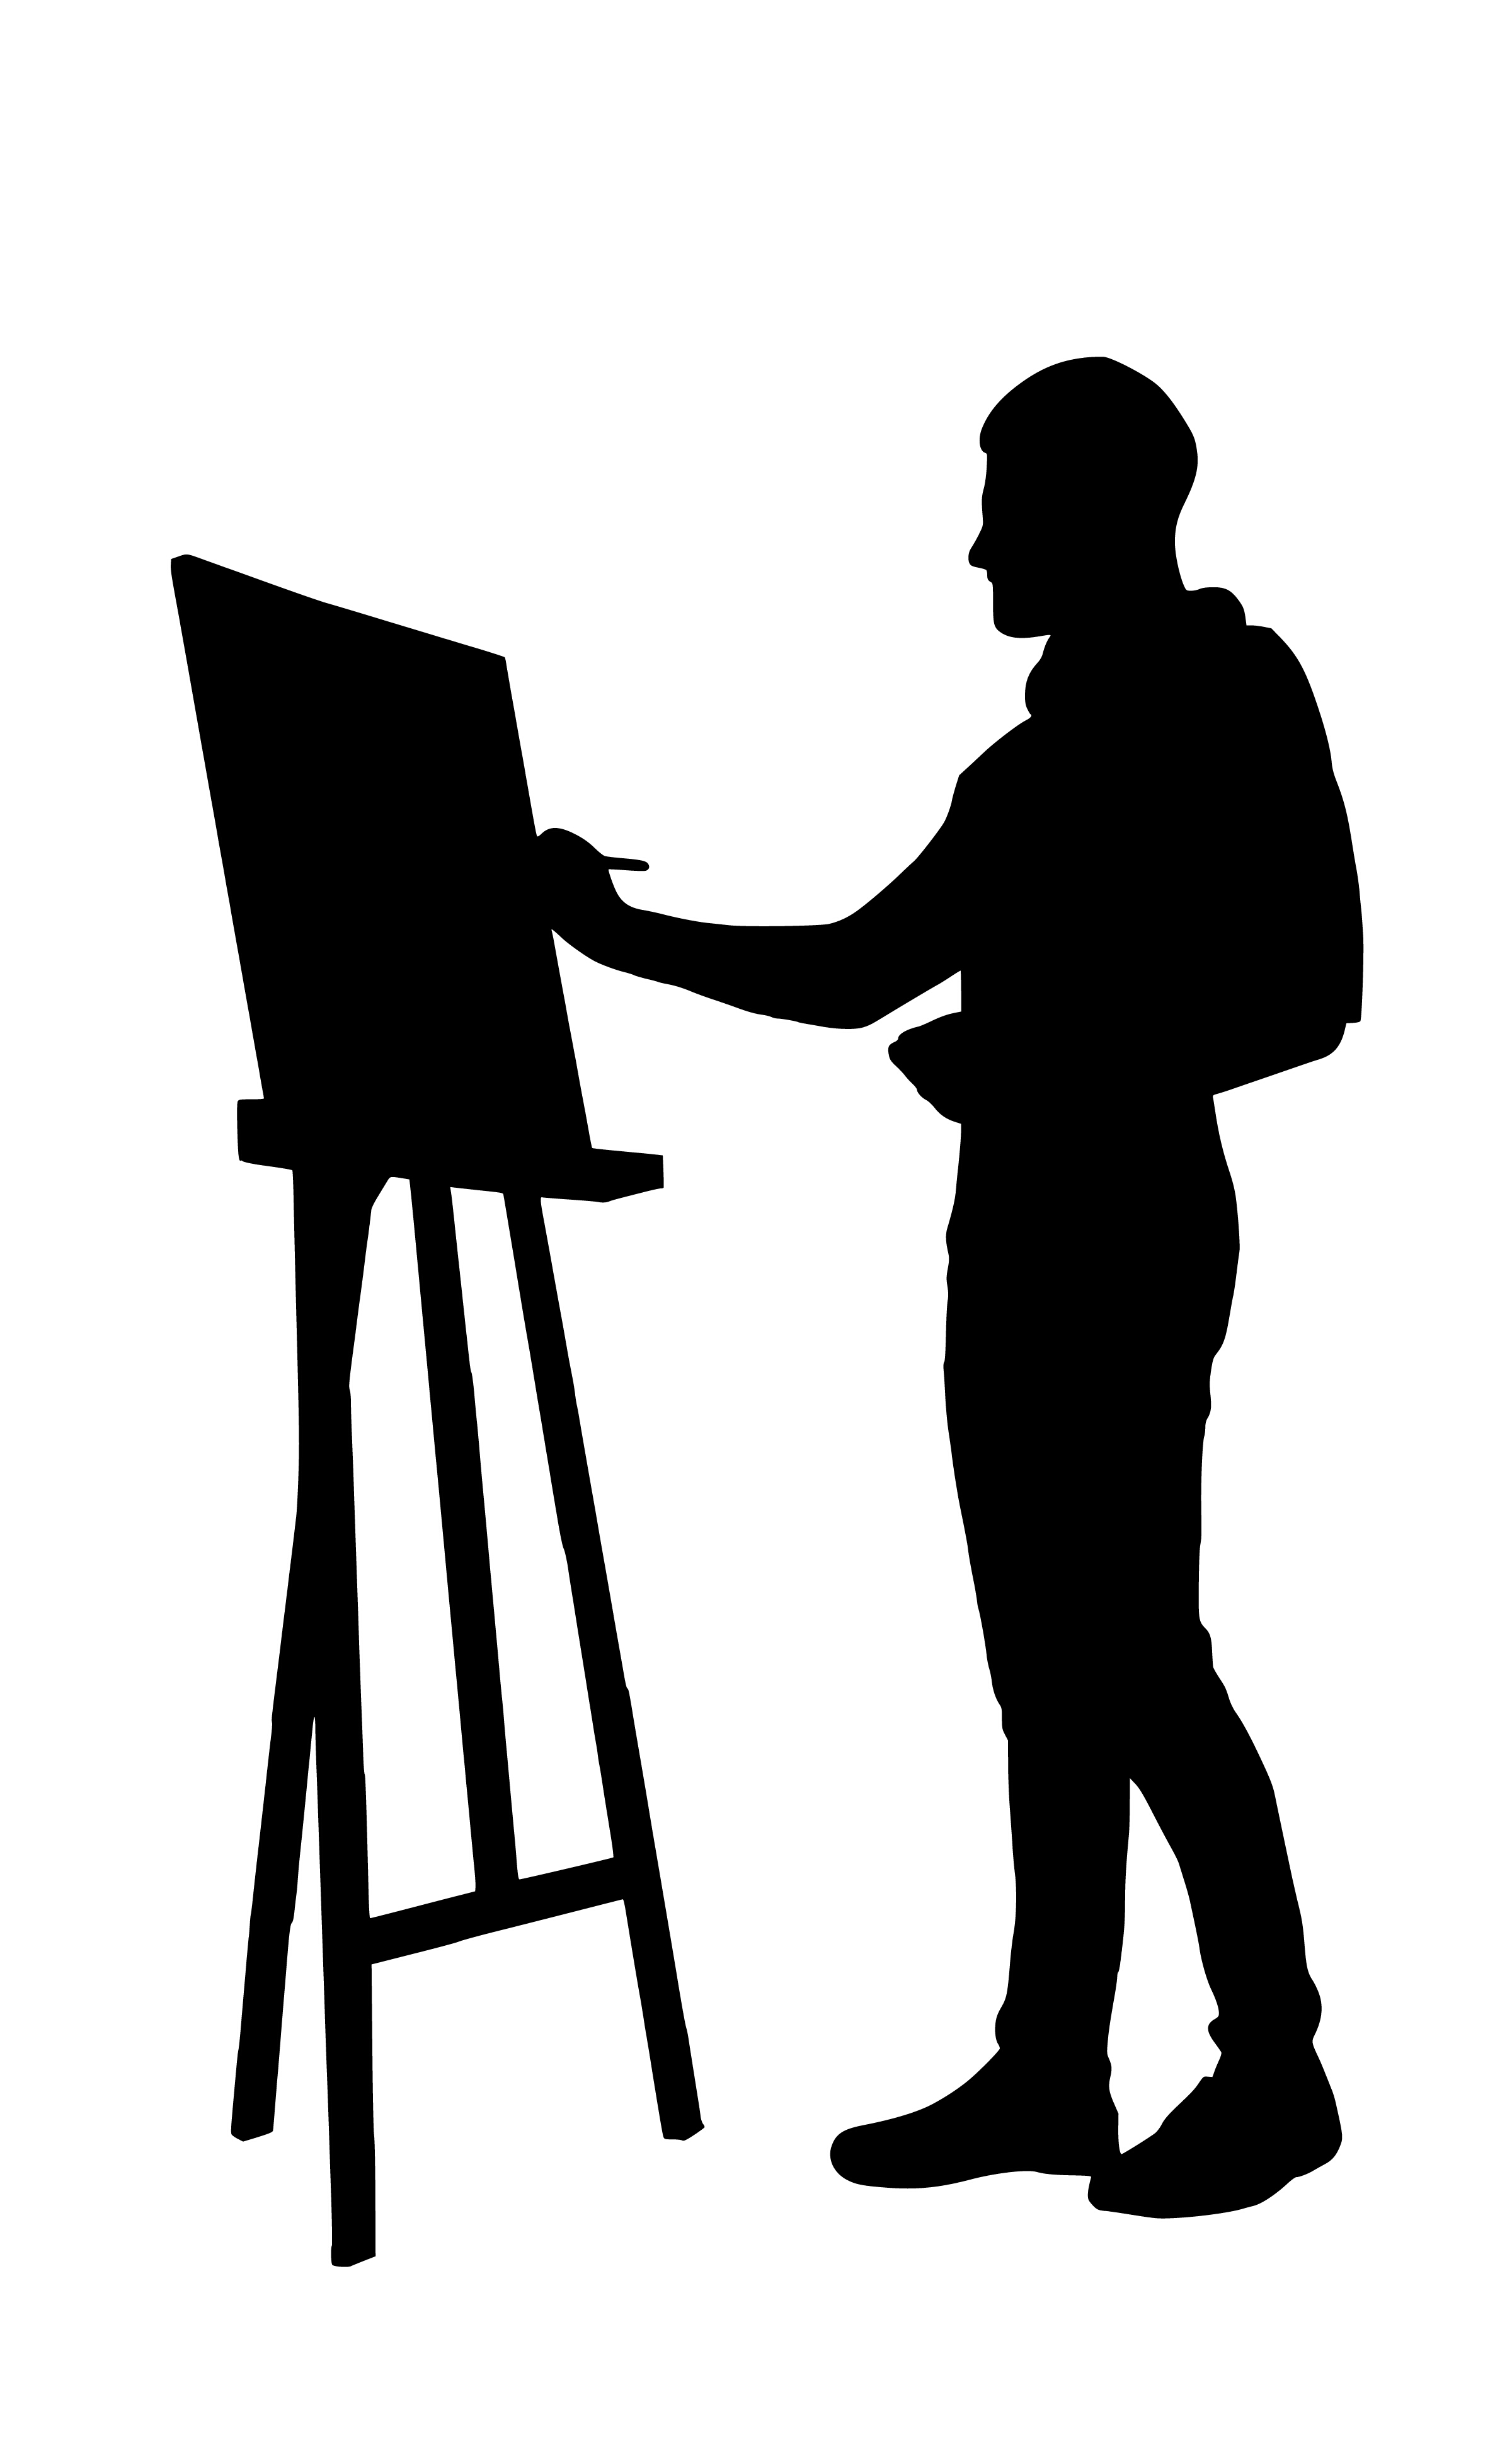 jpg black and white stock Drawing silhouette art. Free images artist standing